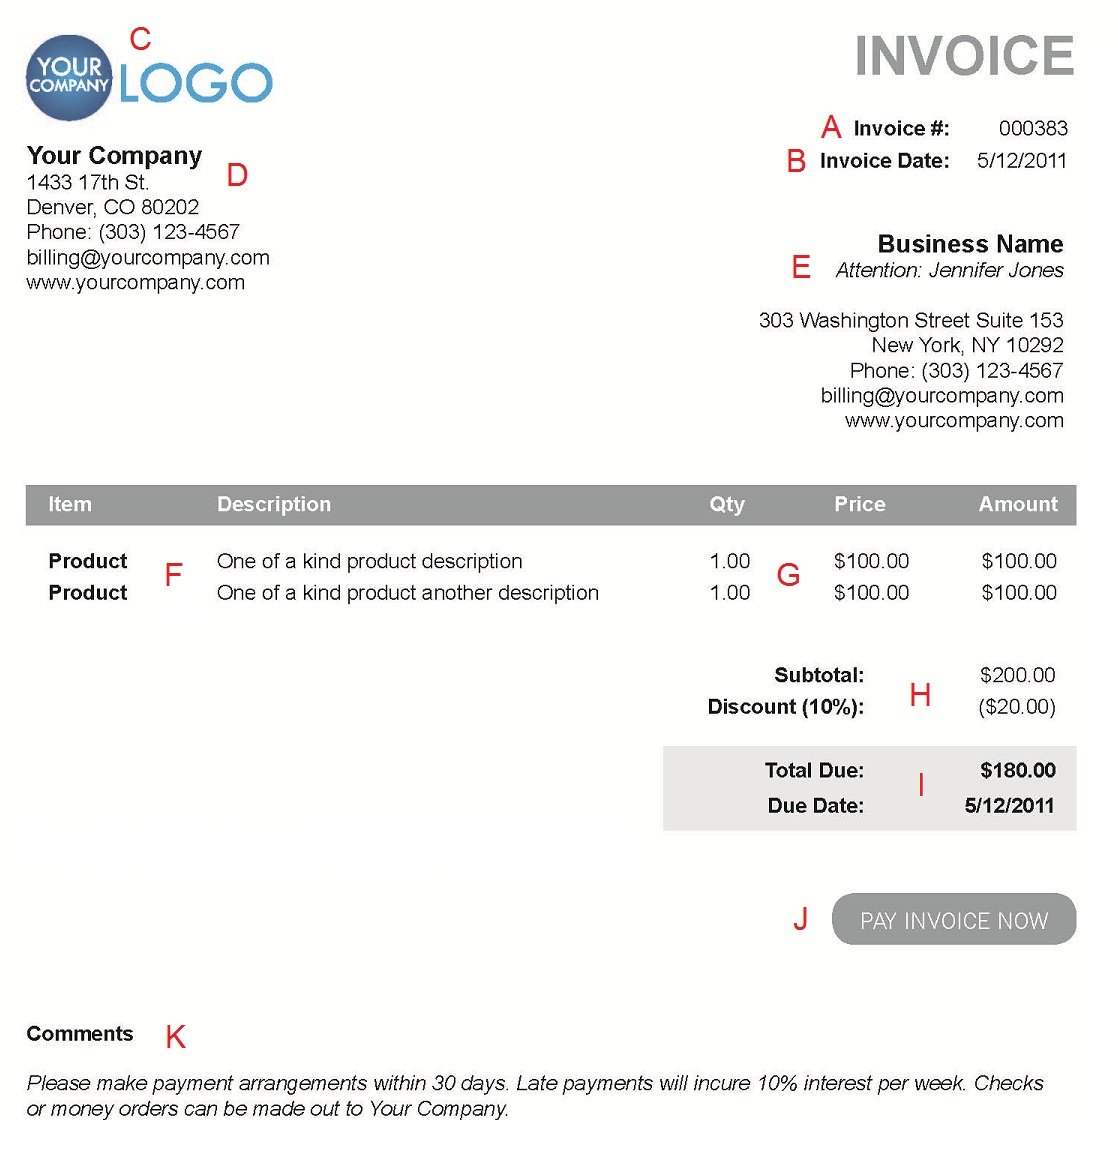 Occupyhistoryus  Gorgeous The  Different Sections Of An Electronic Payment Invoice With Great A  With Alluring Tax Invoice Statement Template Also Invoicing Software Free Download In Addition Requirements For A Valid Tax Invoice And Invoice Format In Word As Well As Pastel My Invoicing Additionally Vendor Invoice Processing From Paysimplecom With Occupyhistoryus  Great The  Different Sections Of An Electronic Payment Invoice With Alluring A  And Gorgeous Tax Invoice Statement Template Also Invoicing Software Free Download In Addition Requirements For A Valid Tax Invoice From Paysimplecom